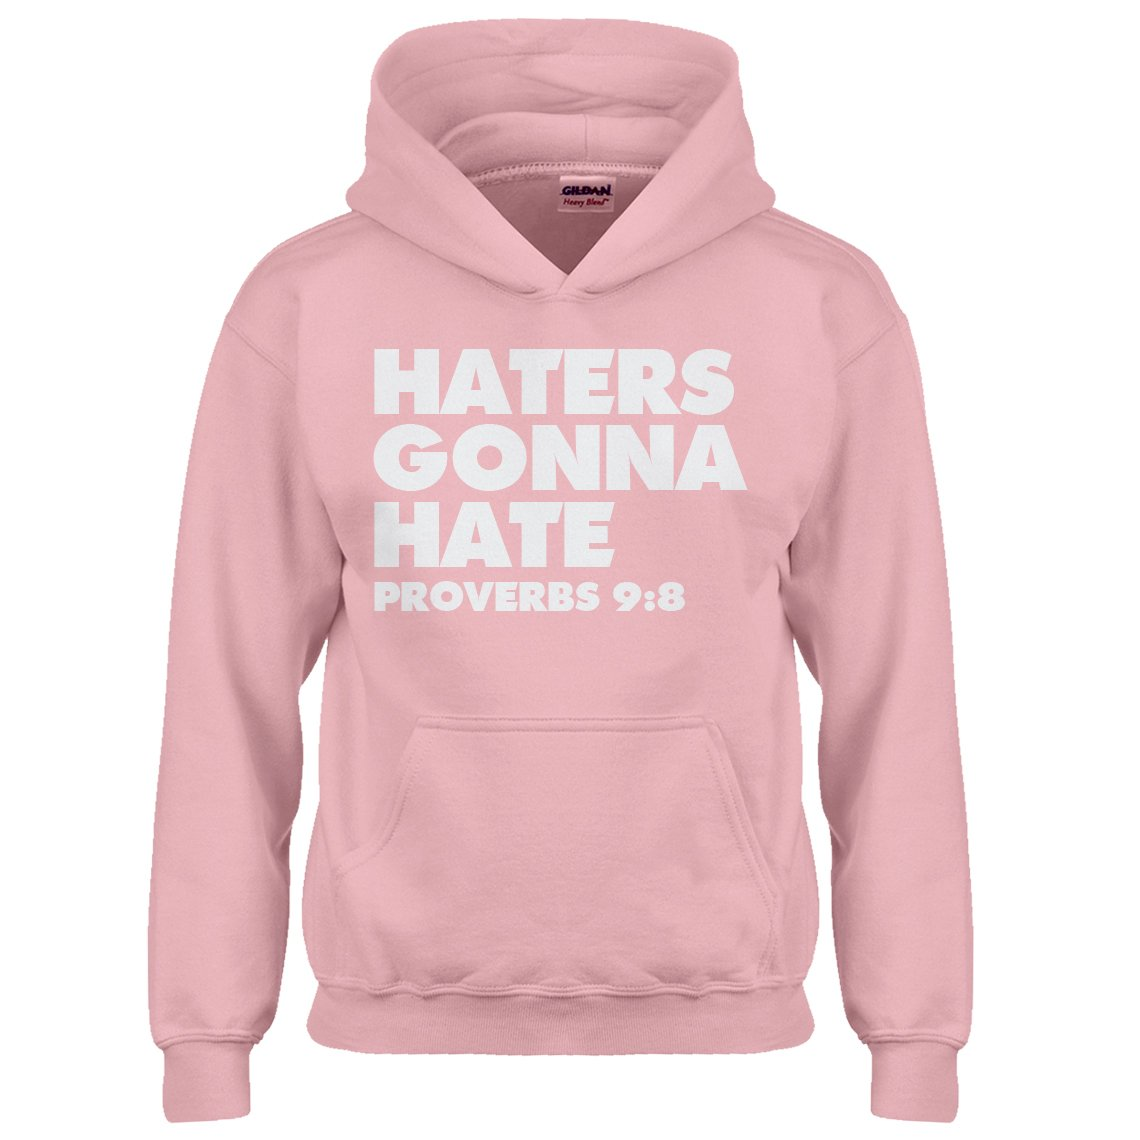 Indica Plateau Youth Haters Gonna Hate Proverbs 9:8 Kids Hoodie